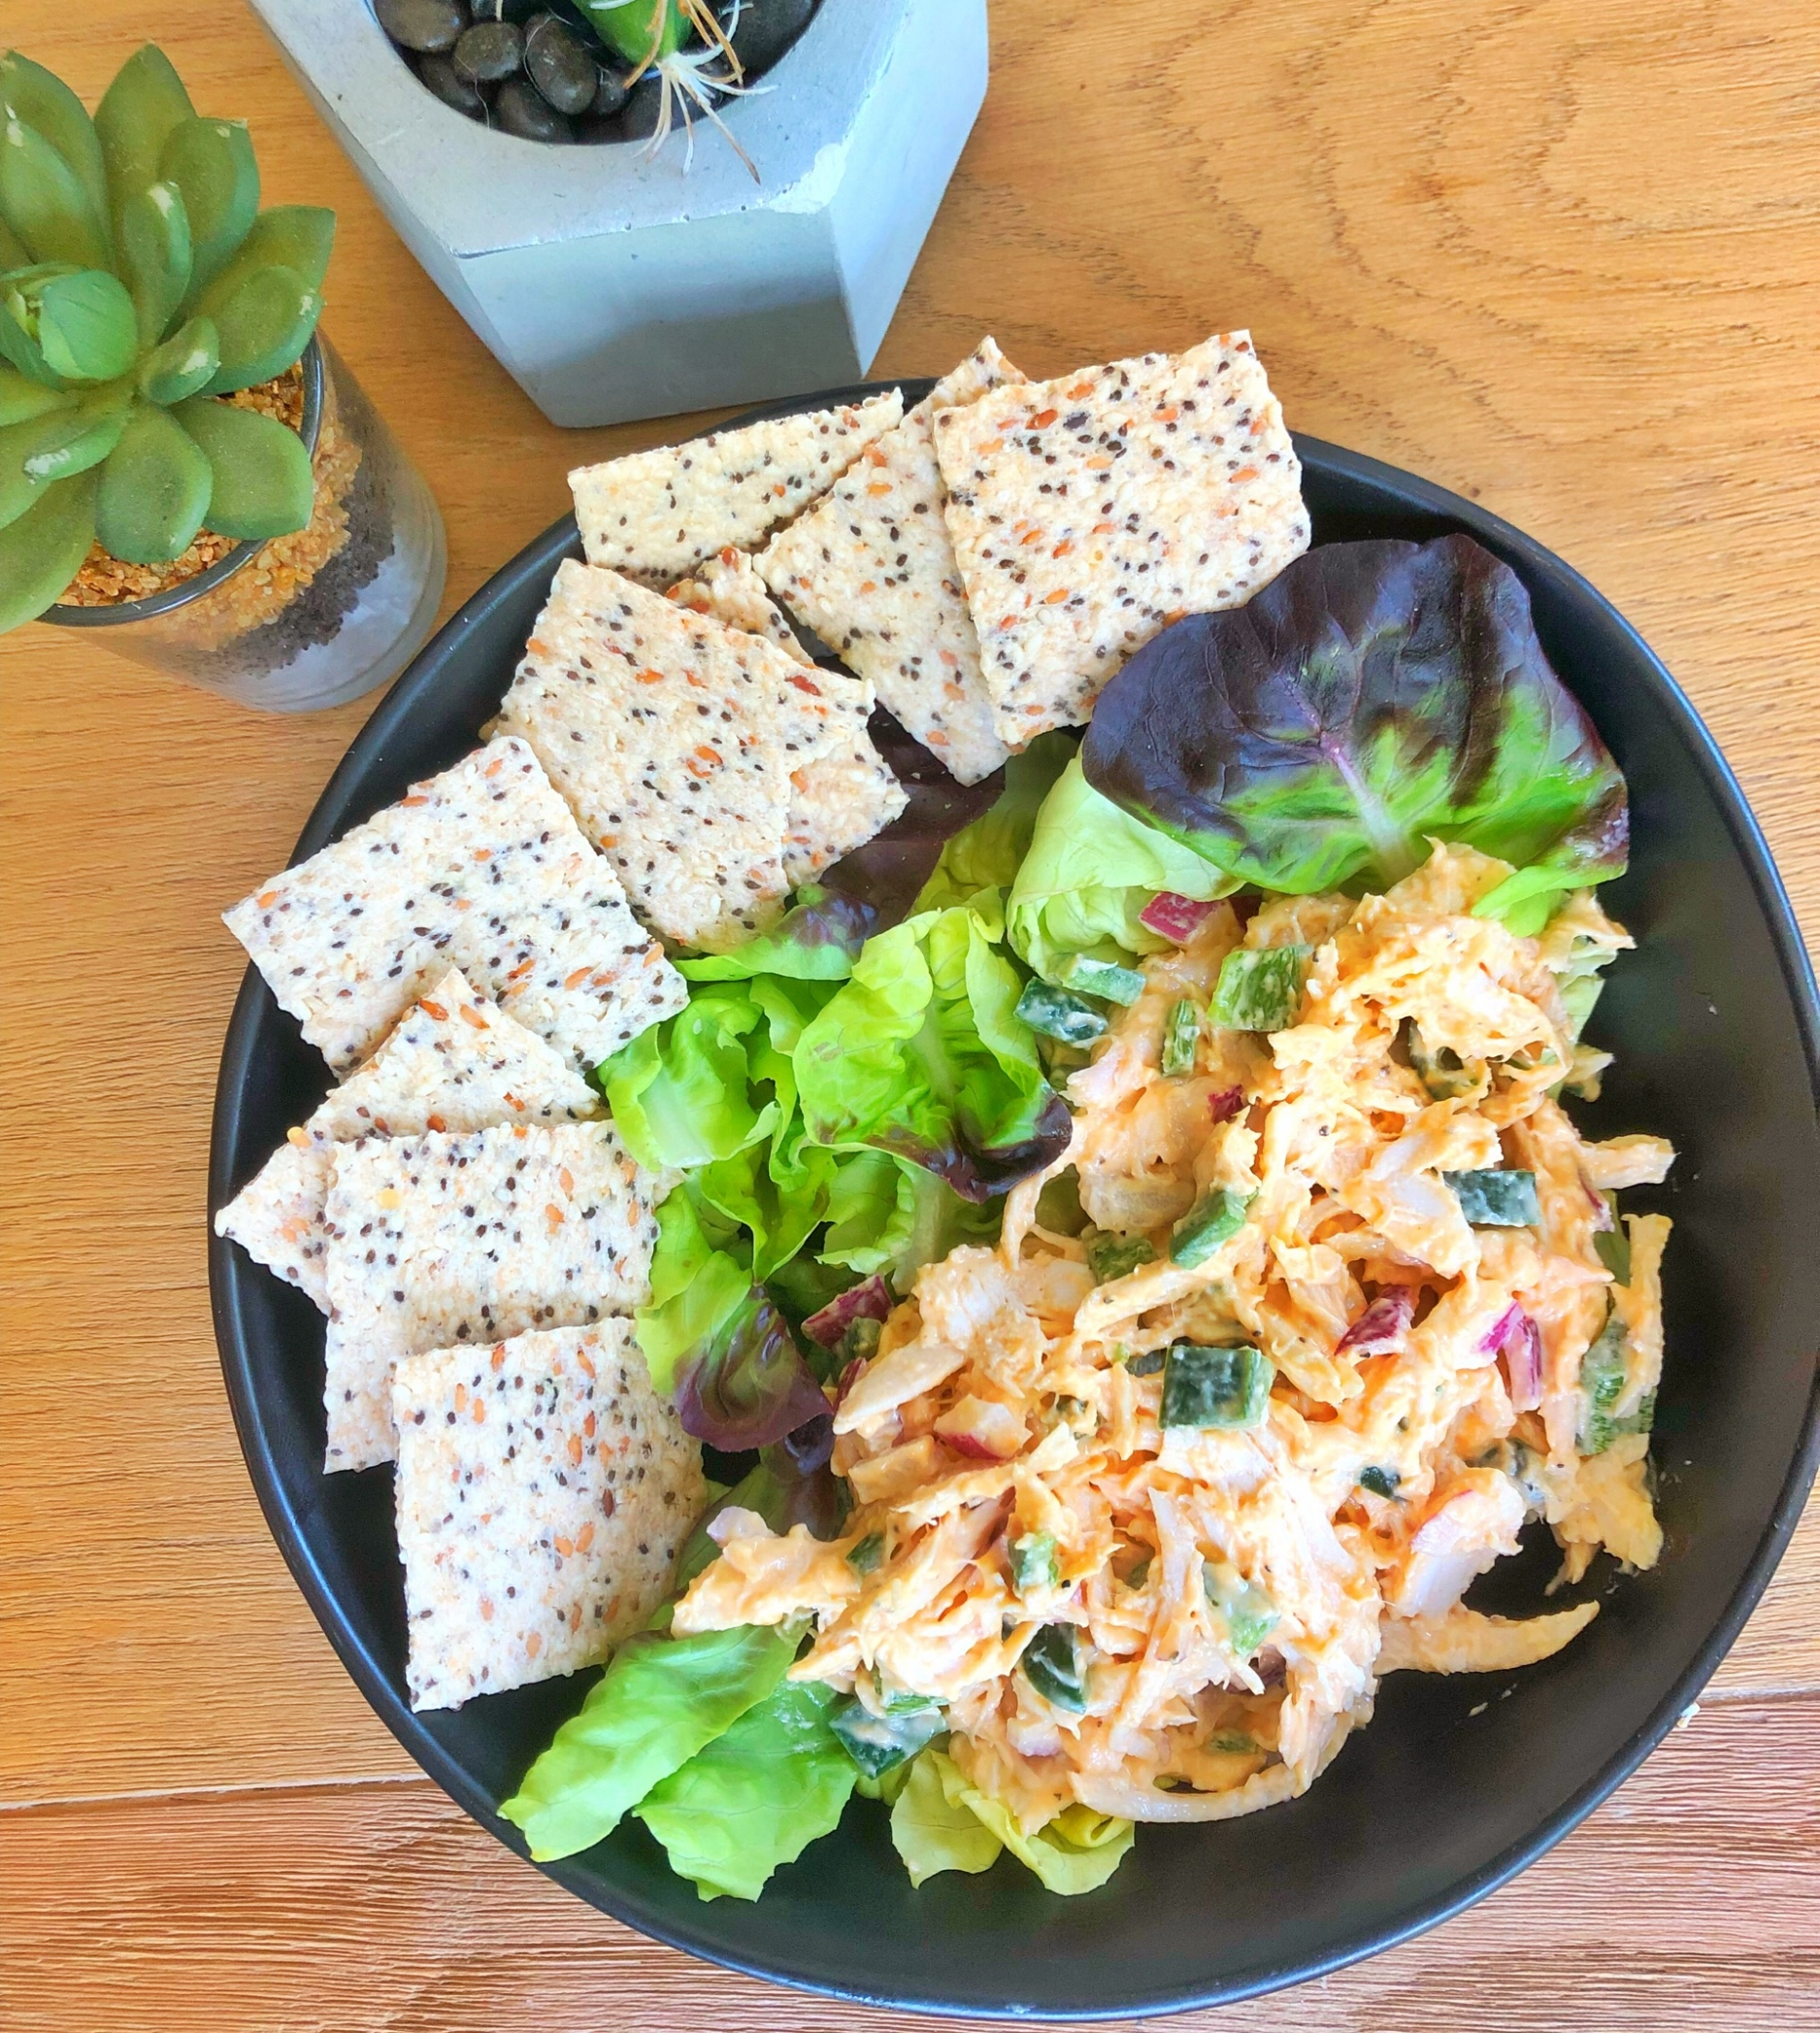 buffalo chicken salad.JPG-quicks-eats-salad-chicken-buffalo-whole-30